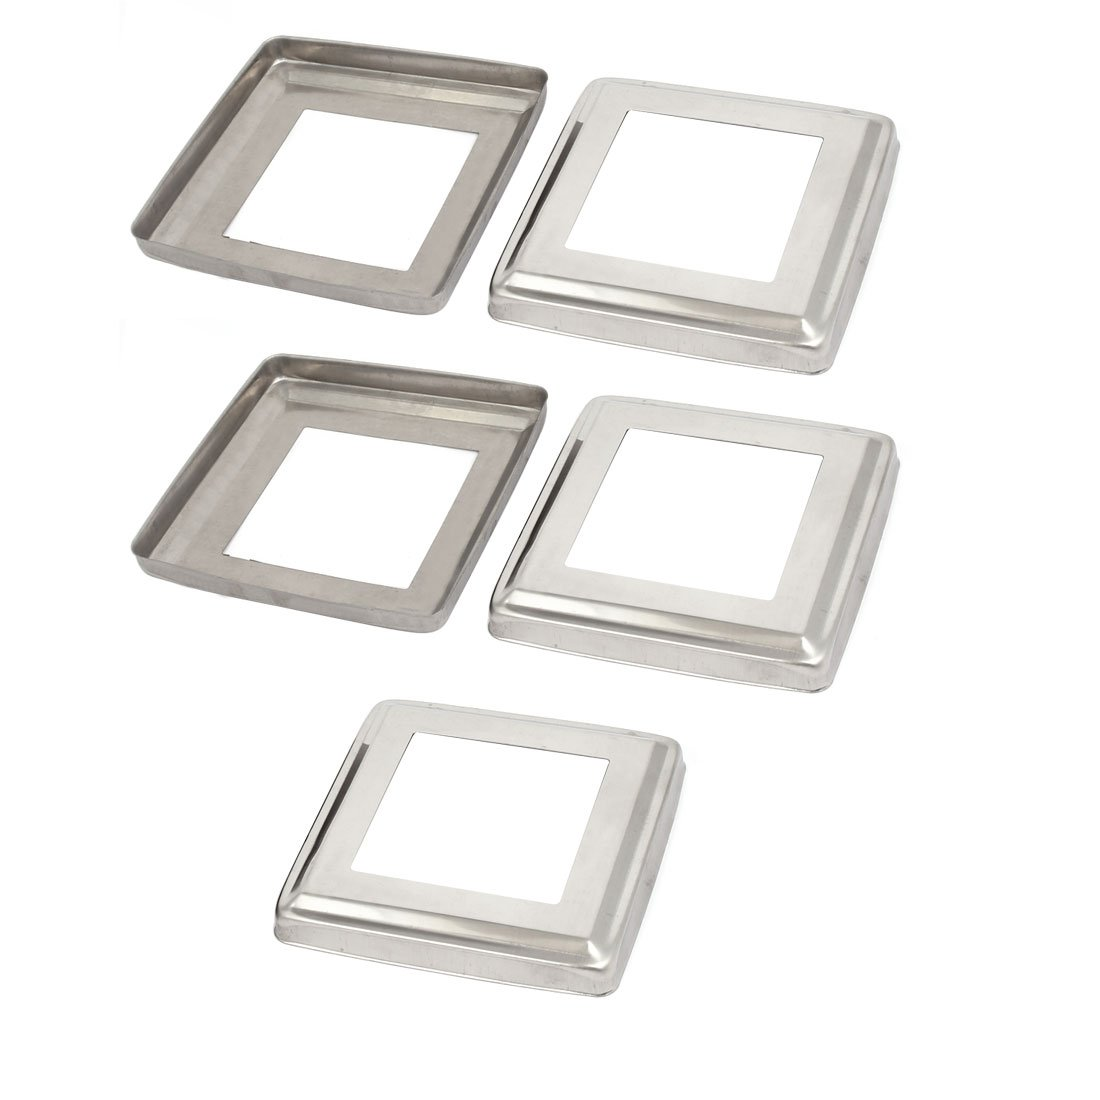 uxcell 5pcs Ladder Handrail Hand Rail 80mmx80mm Post Plate Cover 201 Stainless Steel